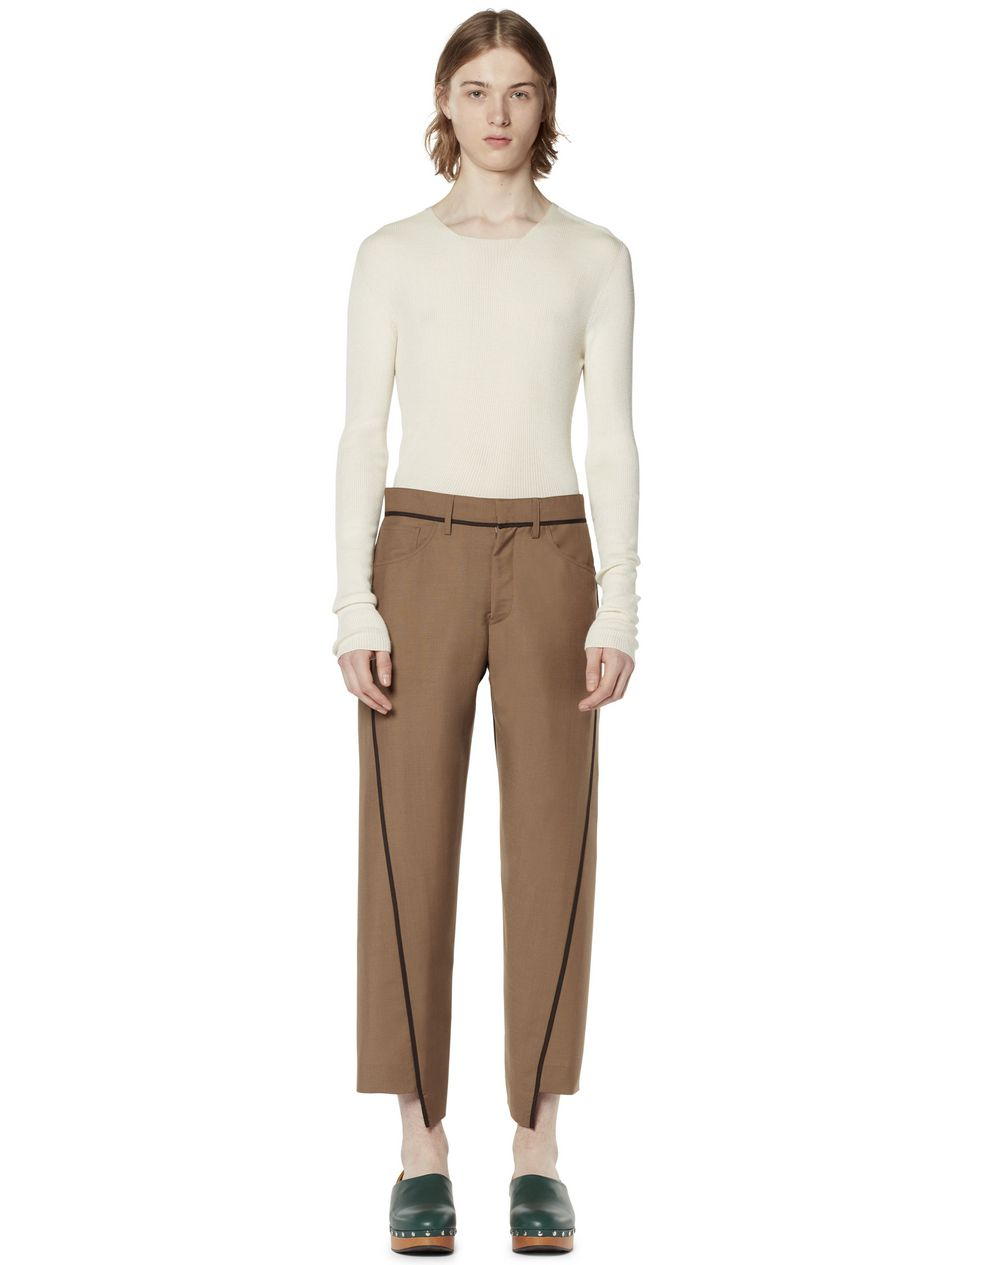 ASYMMETRICAL PANTS IN TOPSTITCHED WOOL - Lanvin